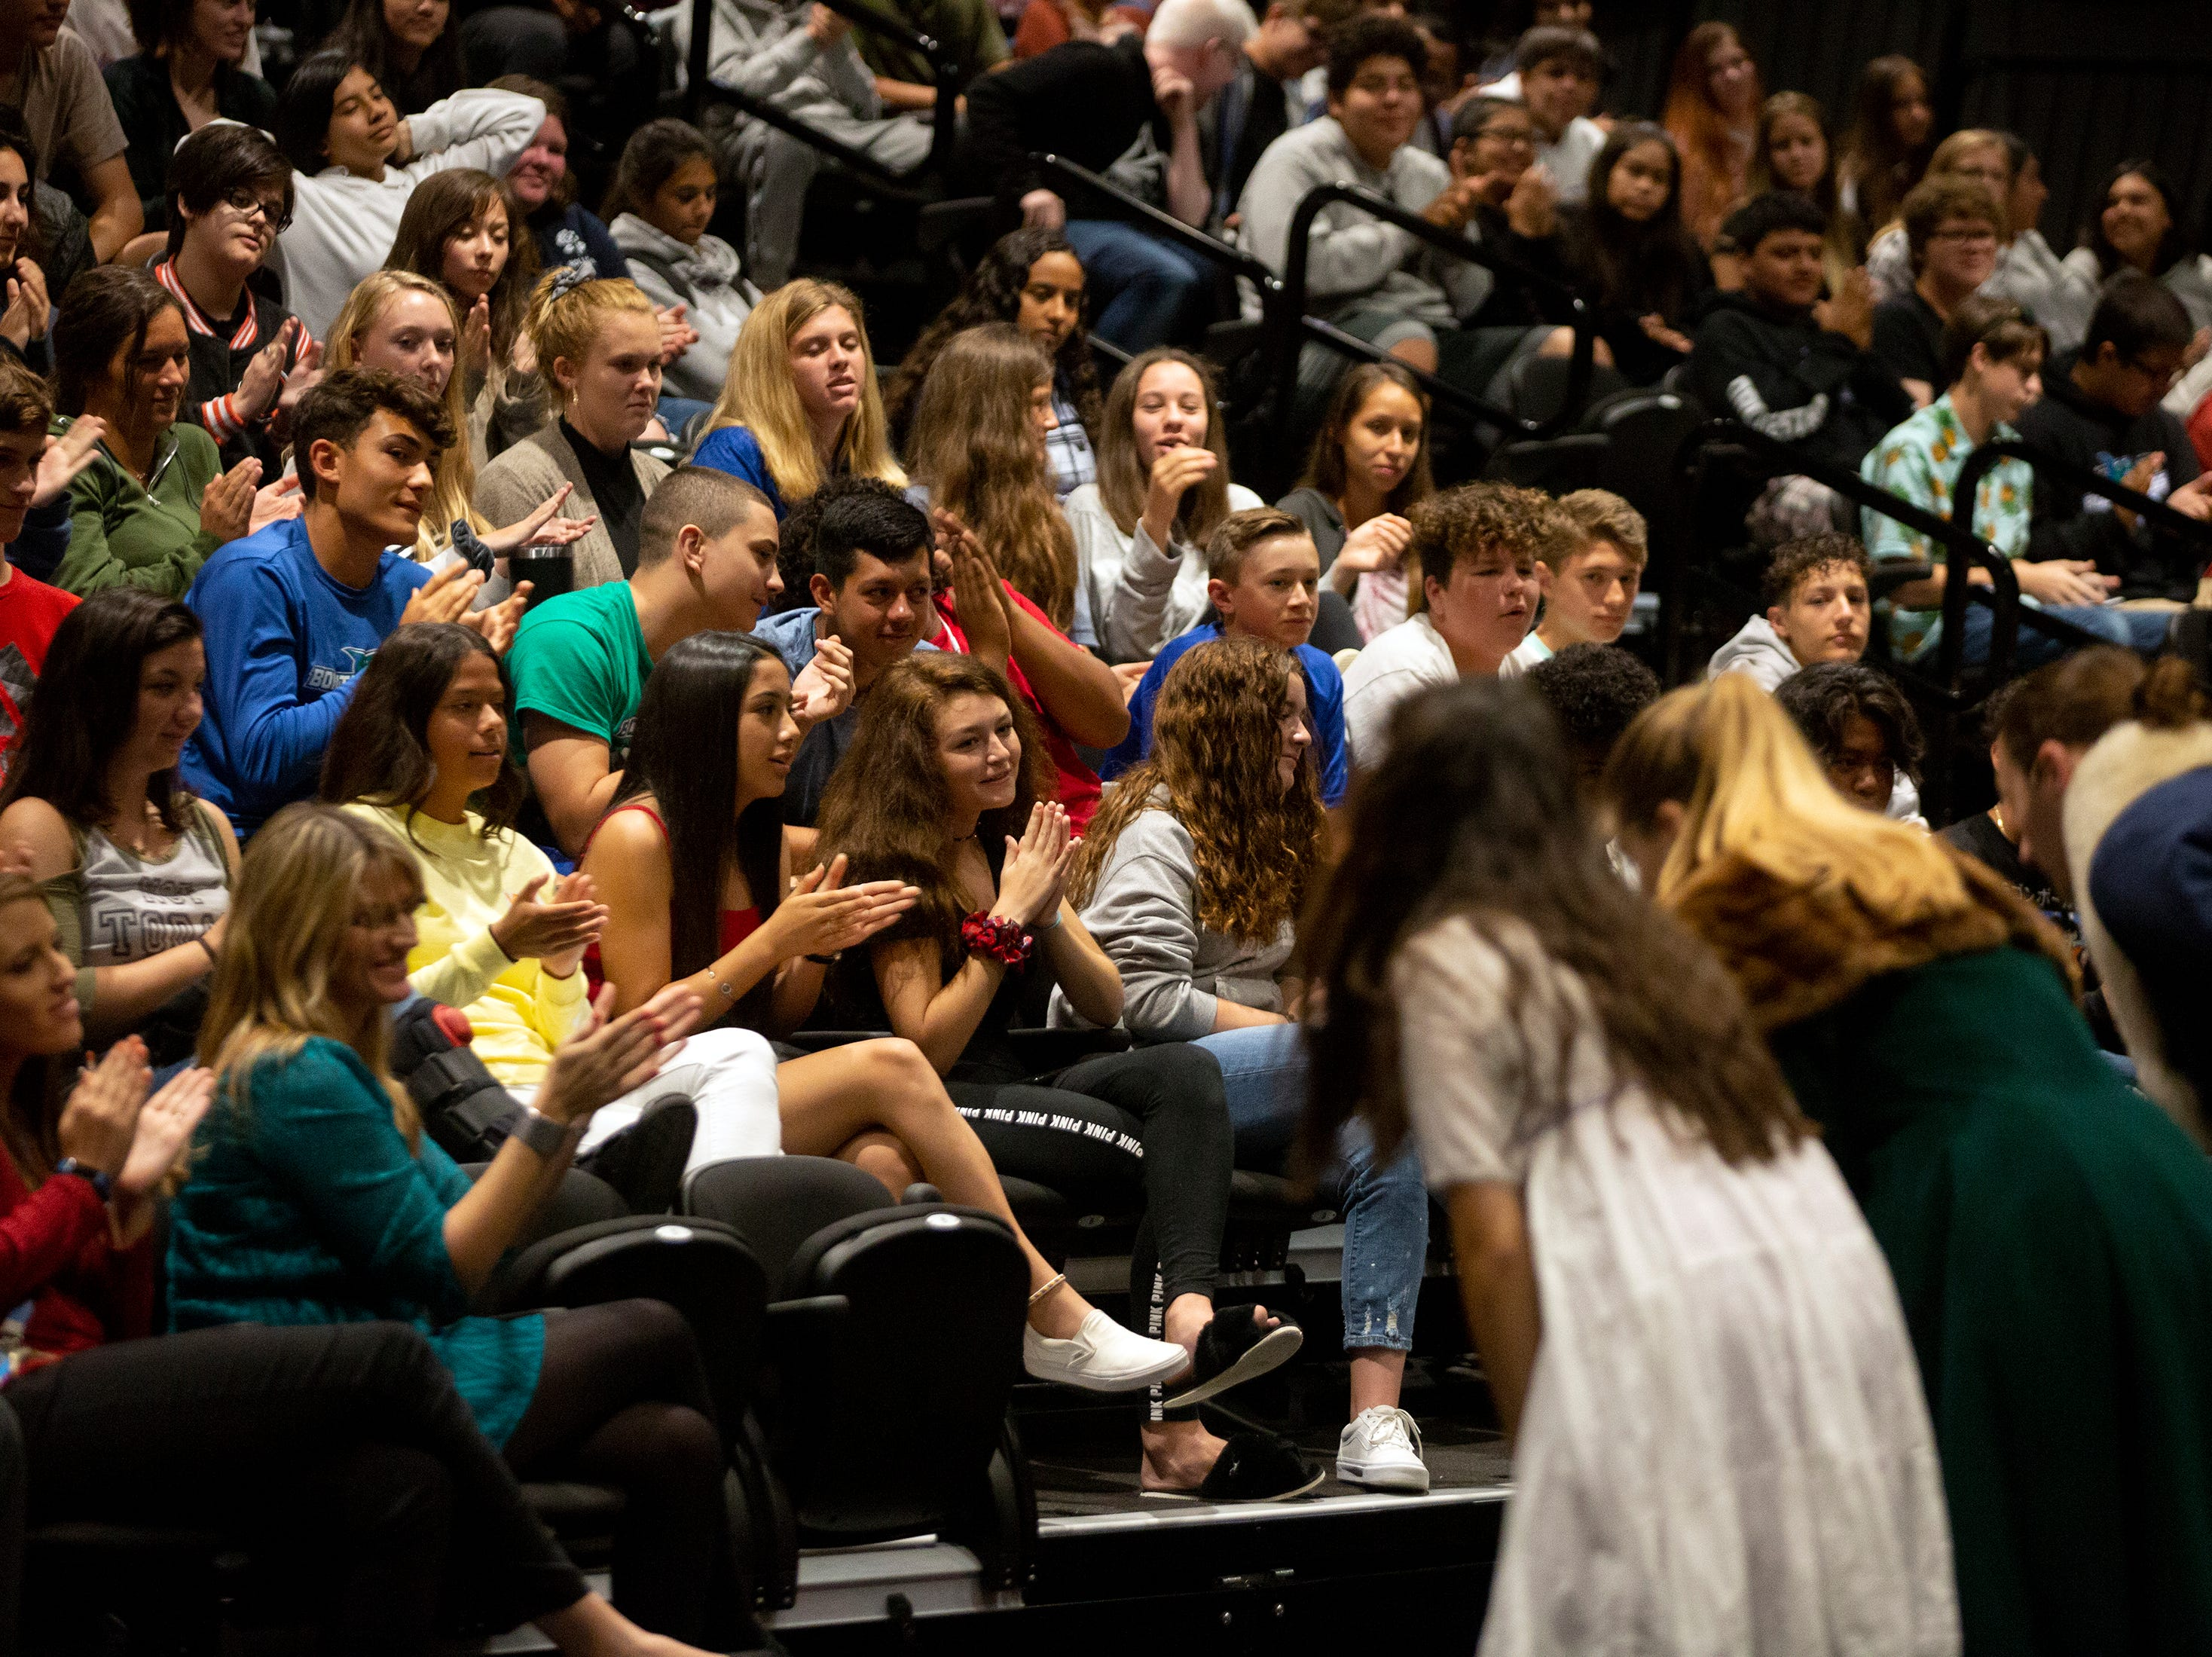 Bonita High School students applaud as the actors from the Florida Repertory Theater take a bow after their performance of Romeo and Juliet Thursday, Feb. 28, 2019 at the Bonita High School's black box theater.